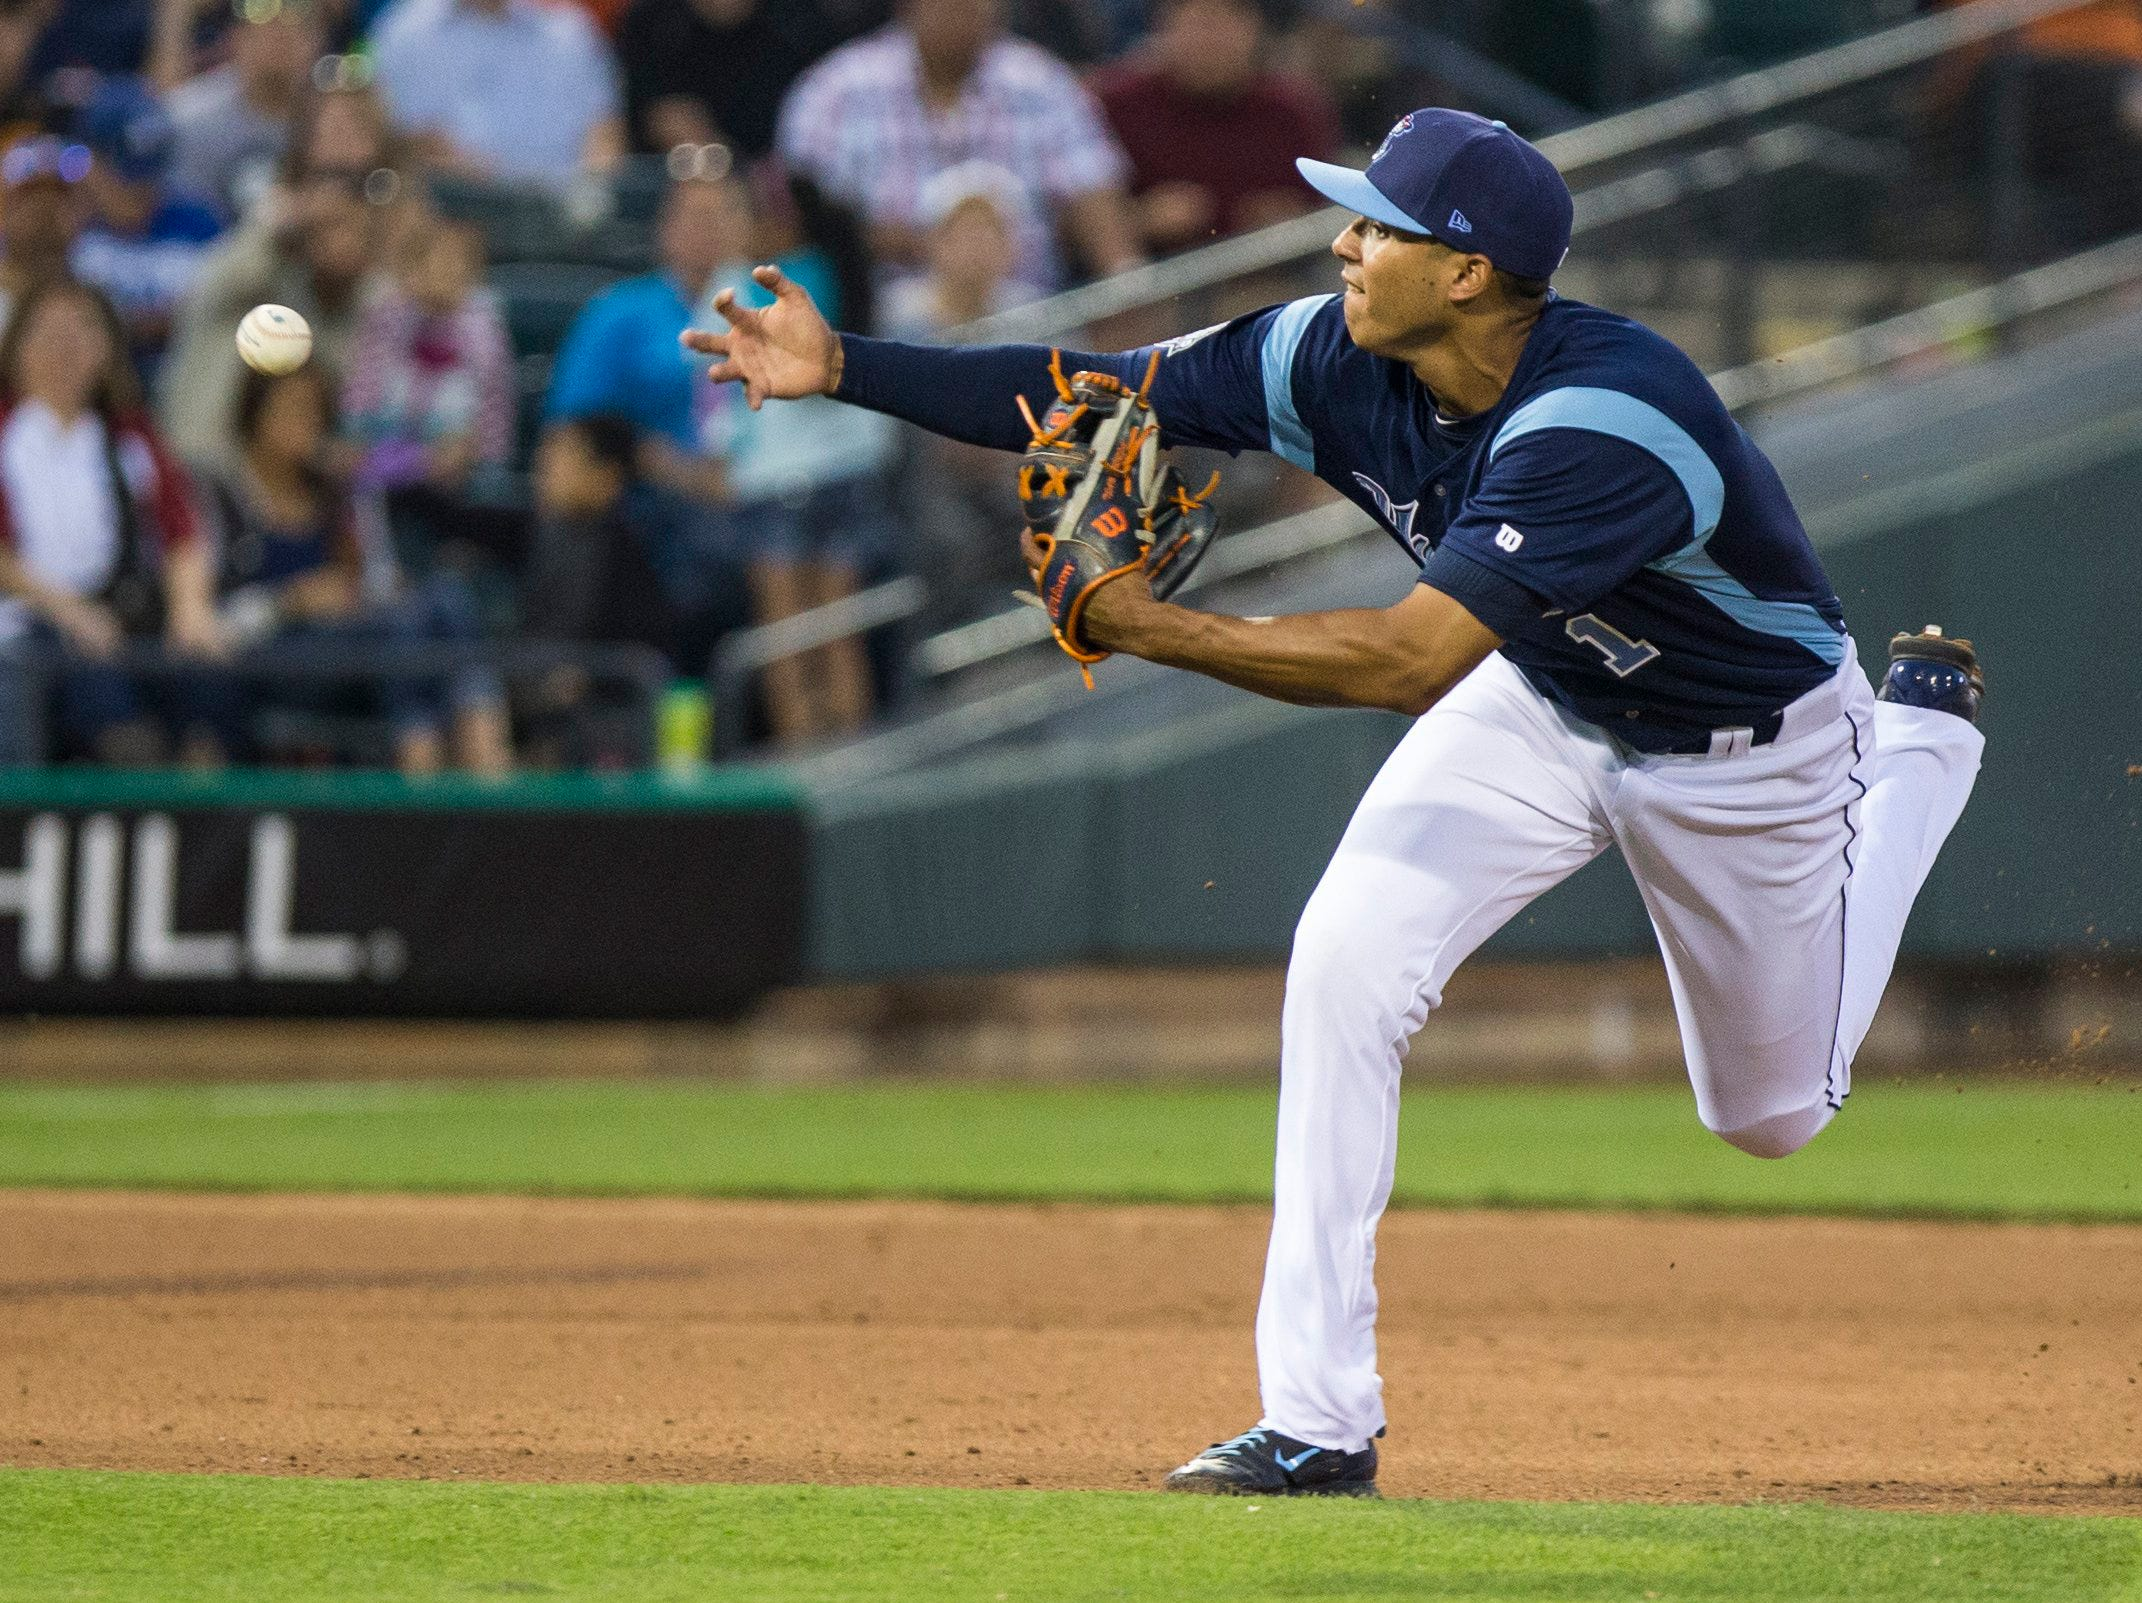 Andrew Mitchell/Caller-TimesCorpus Christi Hooks' Carlos Correa makes an error on a play has he fails to scoop a ball hit in his direction during their 2015 Texas League All Star Game the Houston Astros at Whataburger Field Thursday evening, April 2, in Corpus Christi.